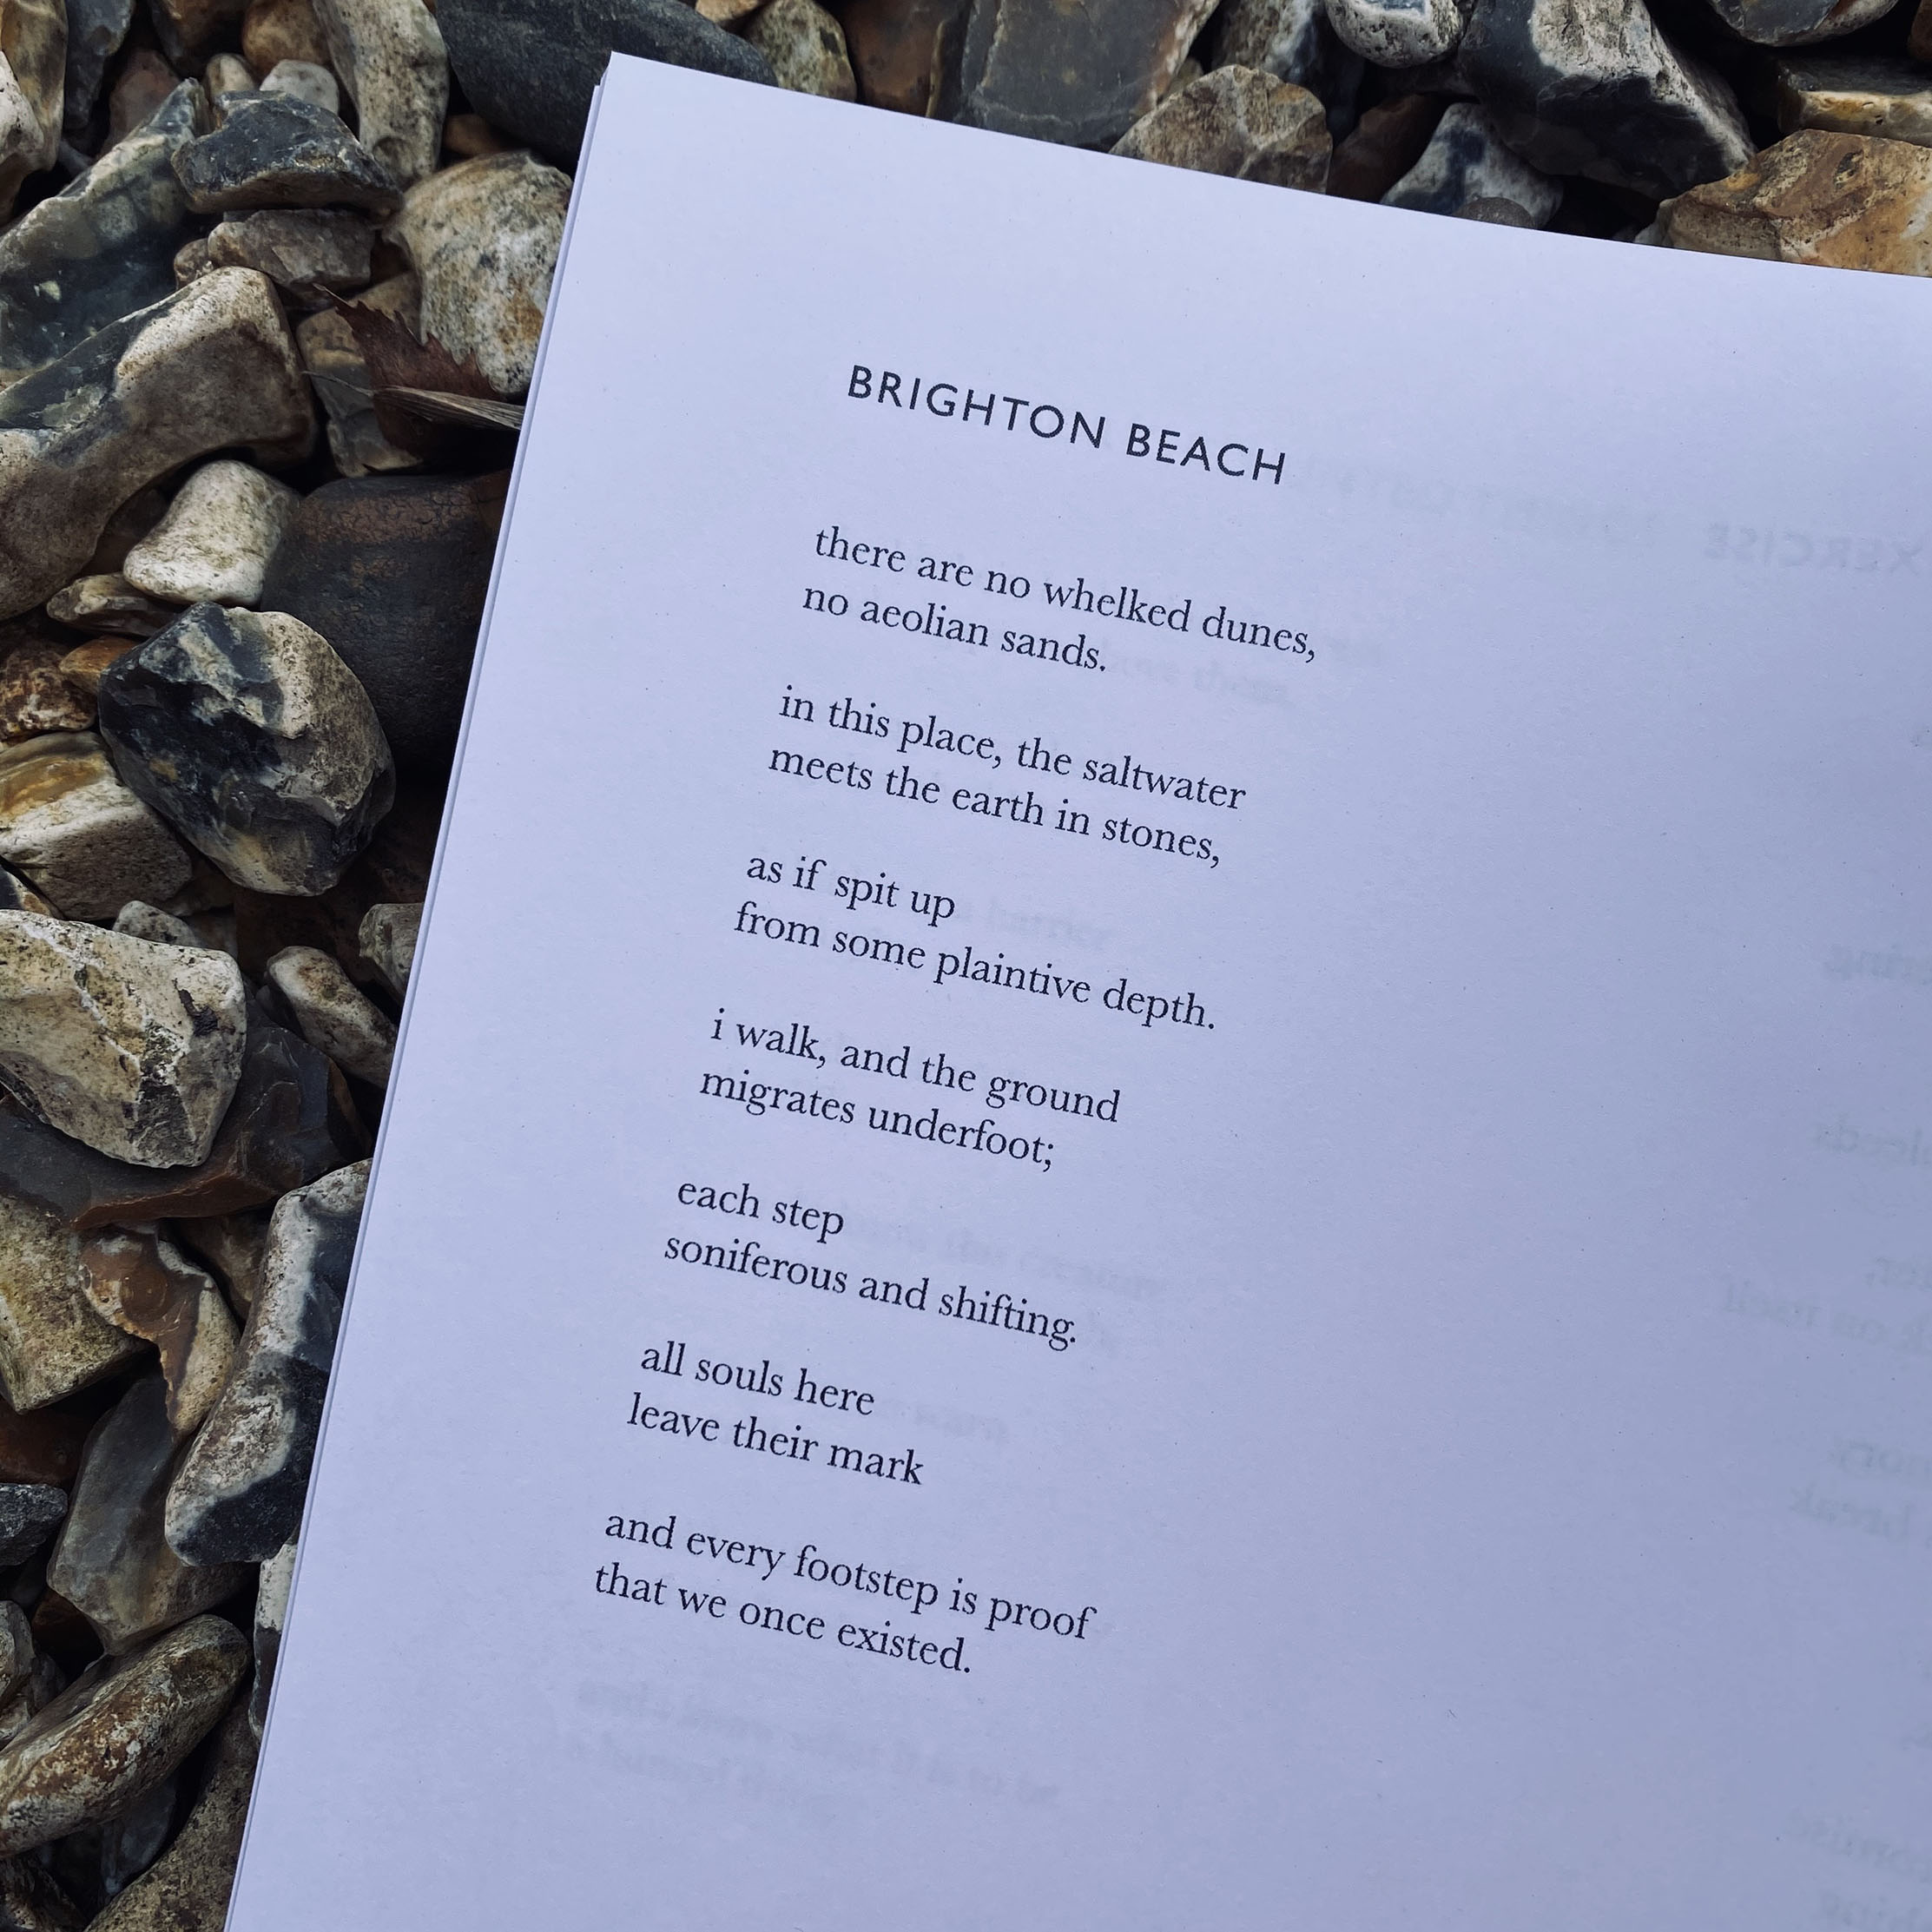 Social poet, Blake Auden, shares exclusive composition about Brighton Beach with BN1